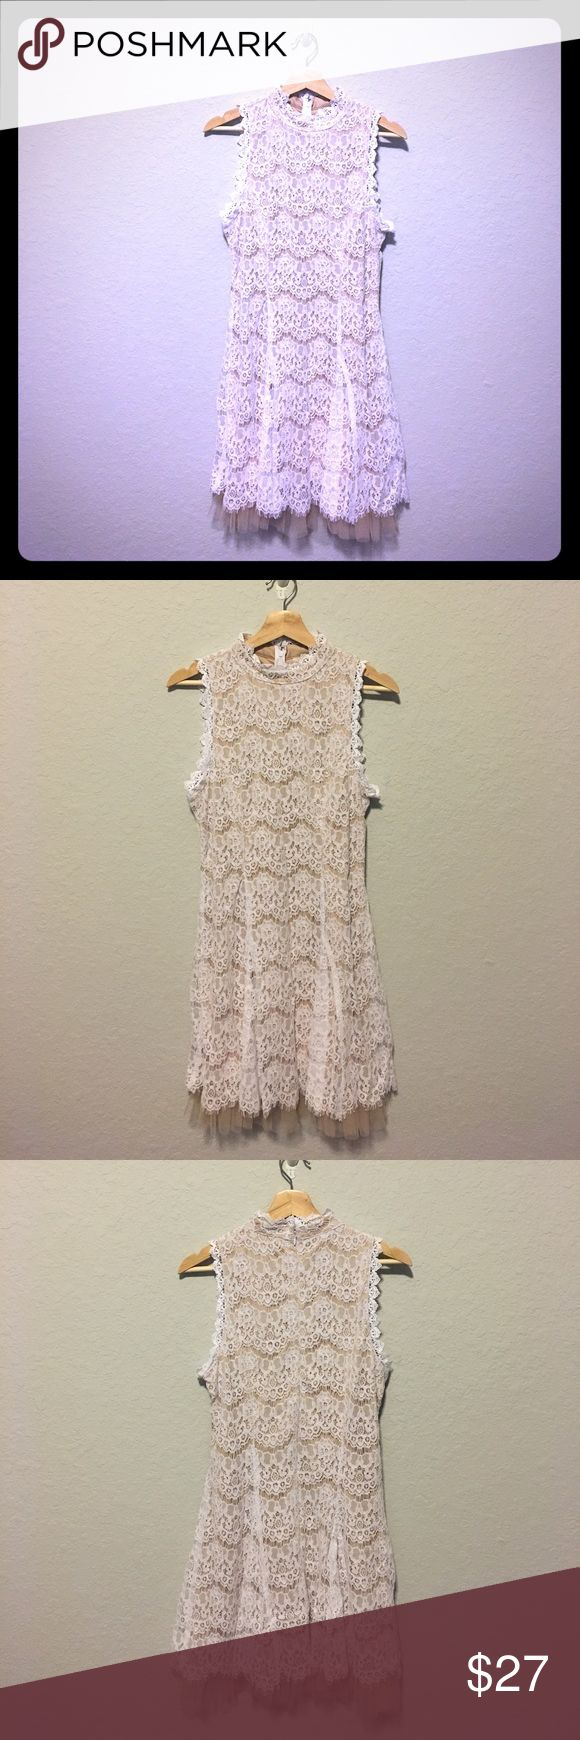 Delicate White Lace sleeveless Dress Lovely and feminine white lace sleeveless dress from Francesca's. Nude lining with Lace overlay. High collar detail. New with tags!!! Perfect for afternoon tea! Size Large, Should to Hem is 36 in Francesca's Collections Dresses